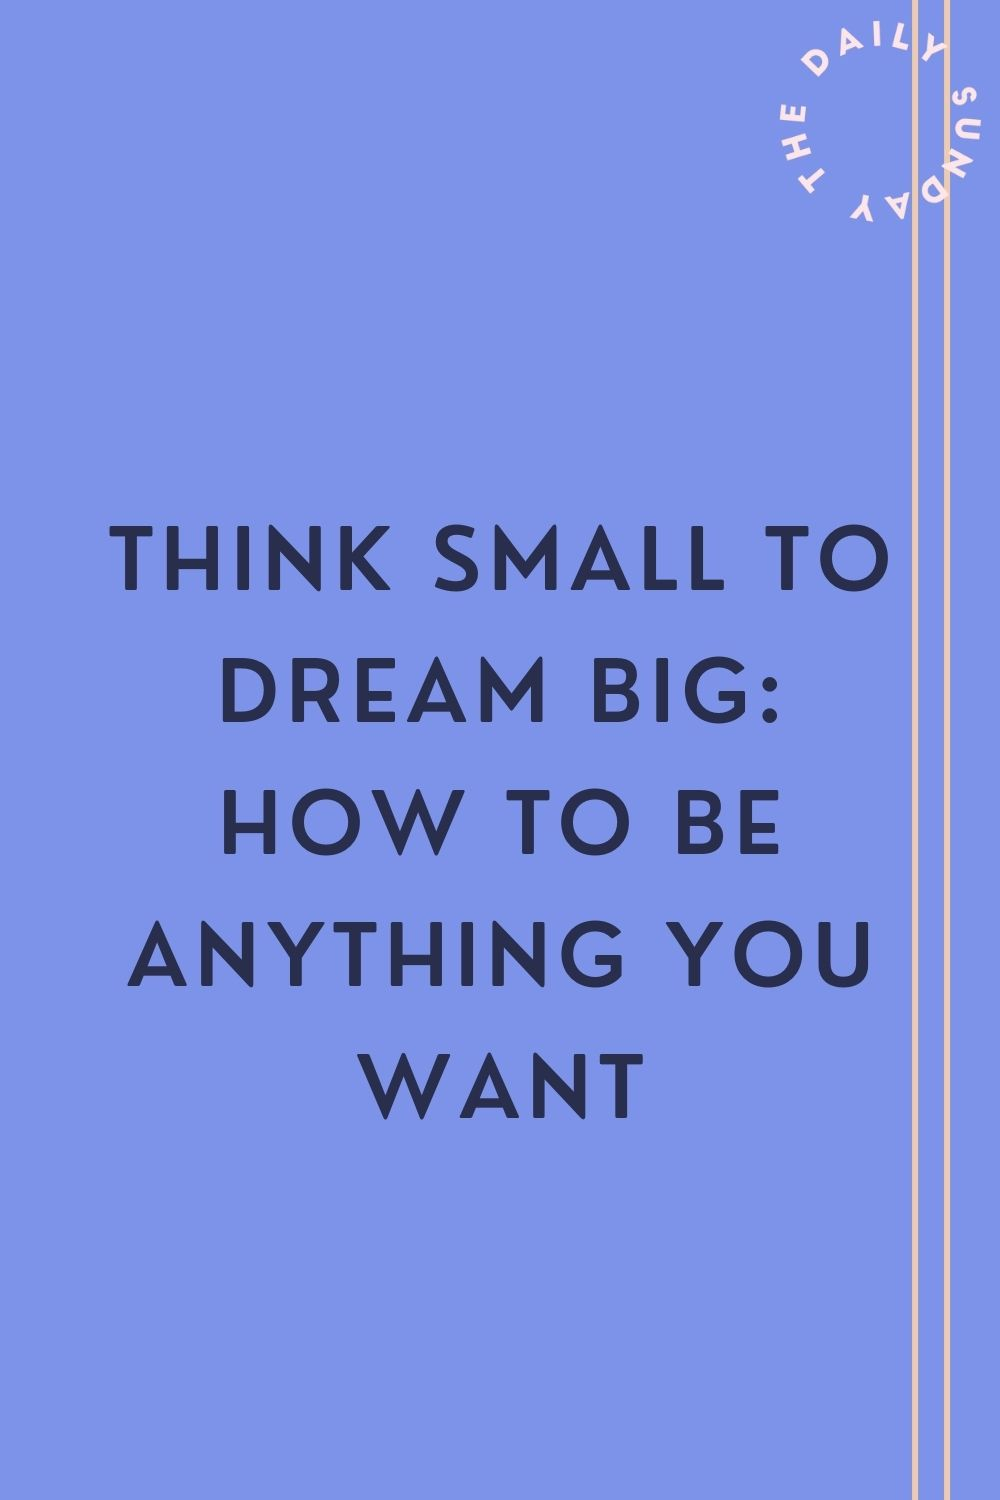 Think Small to Dream Big: How To Be Anything You Want